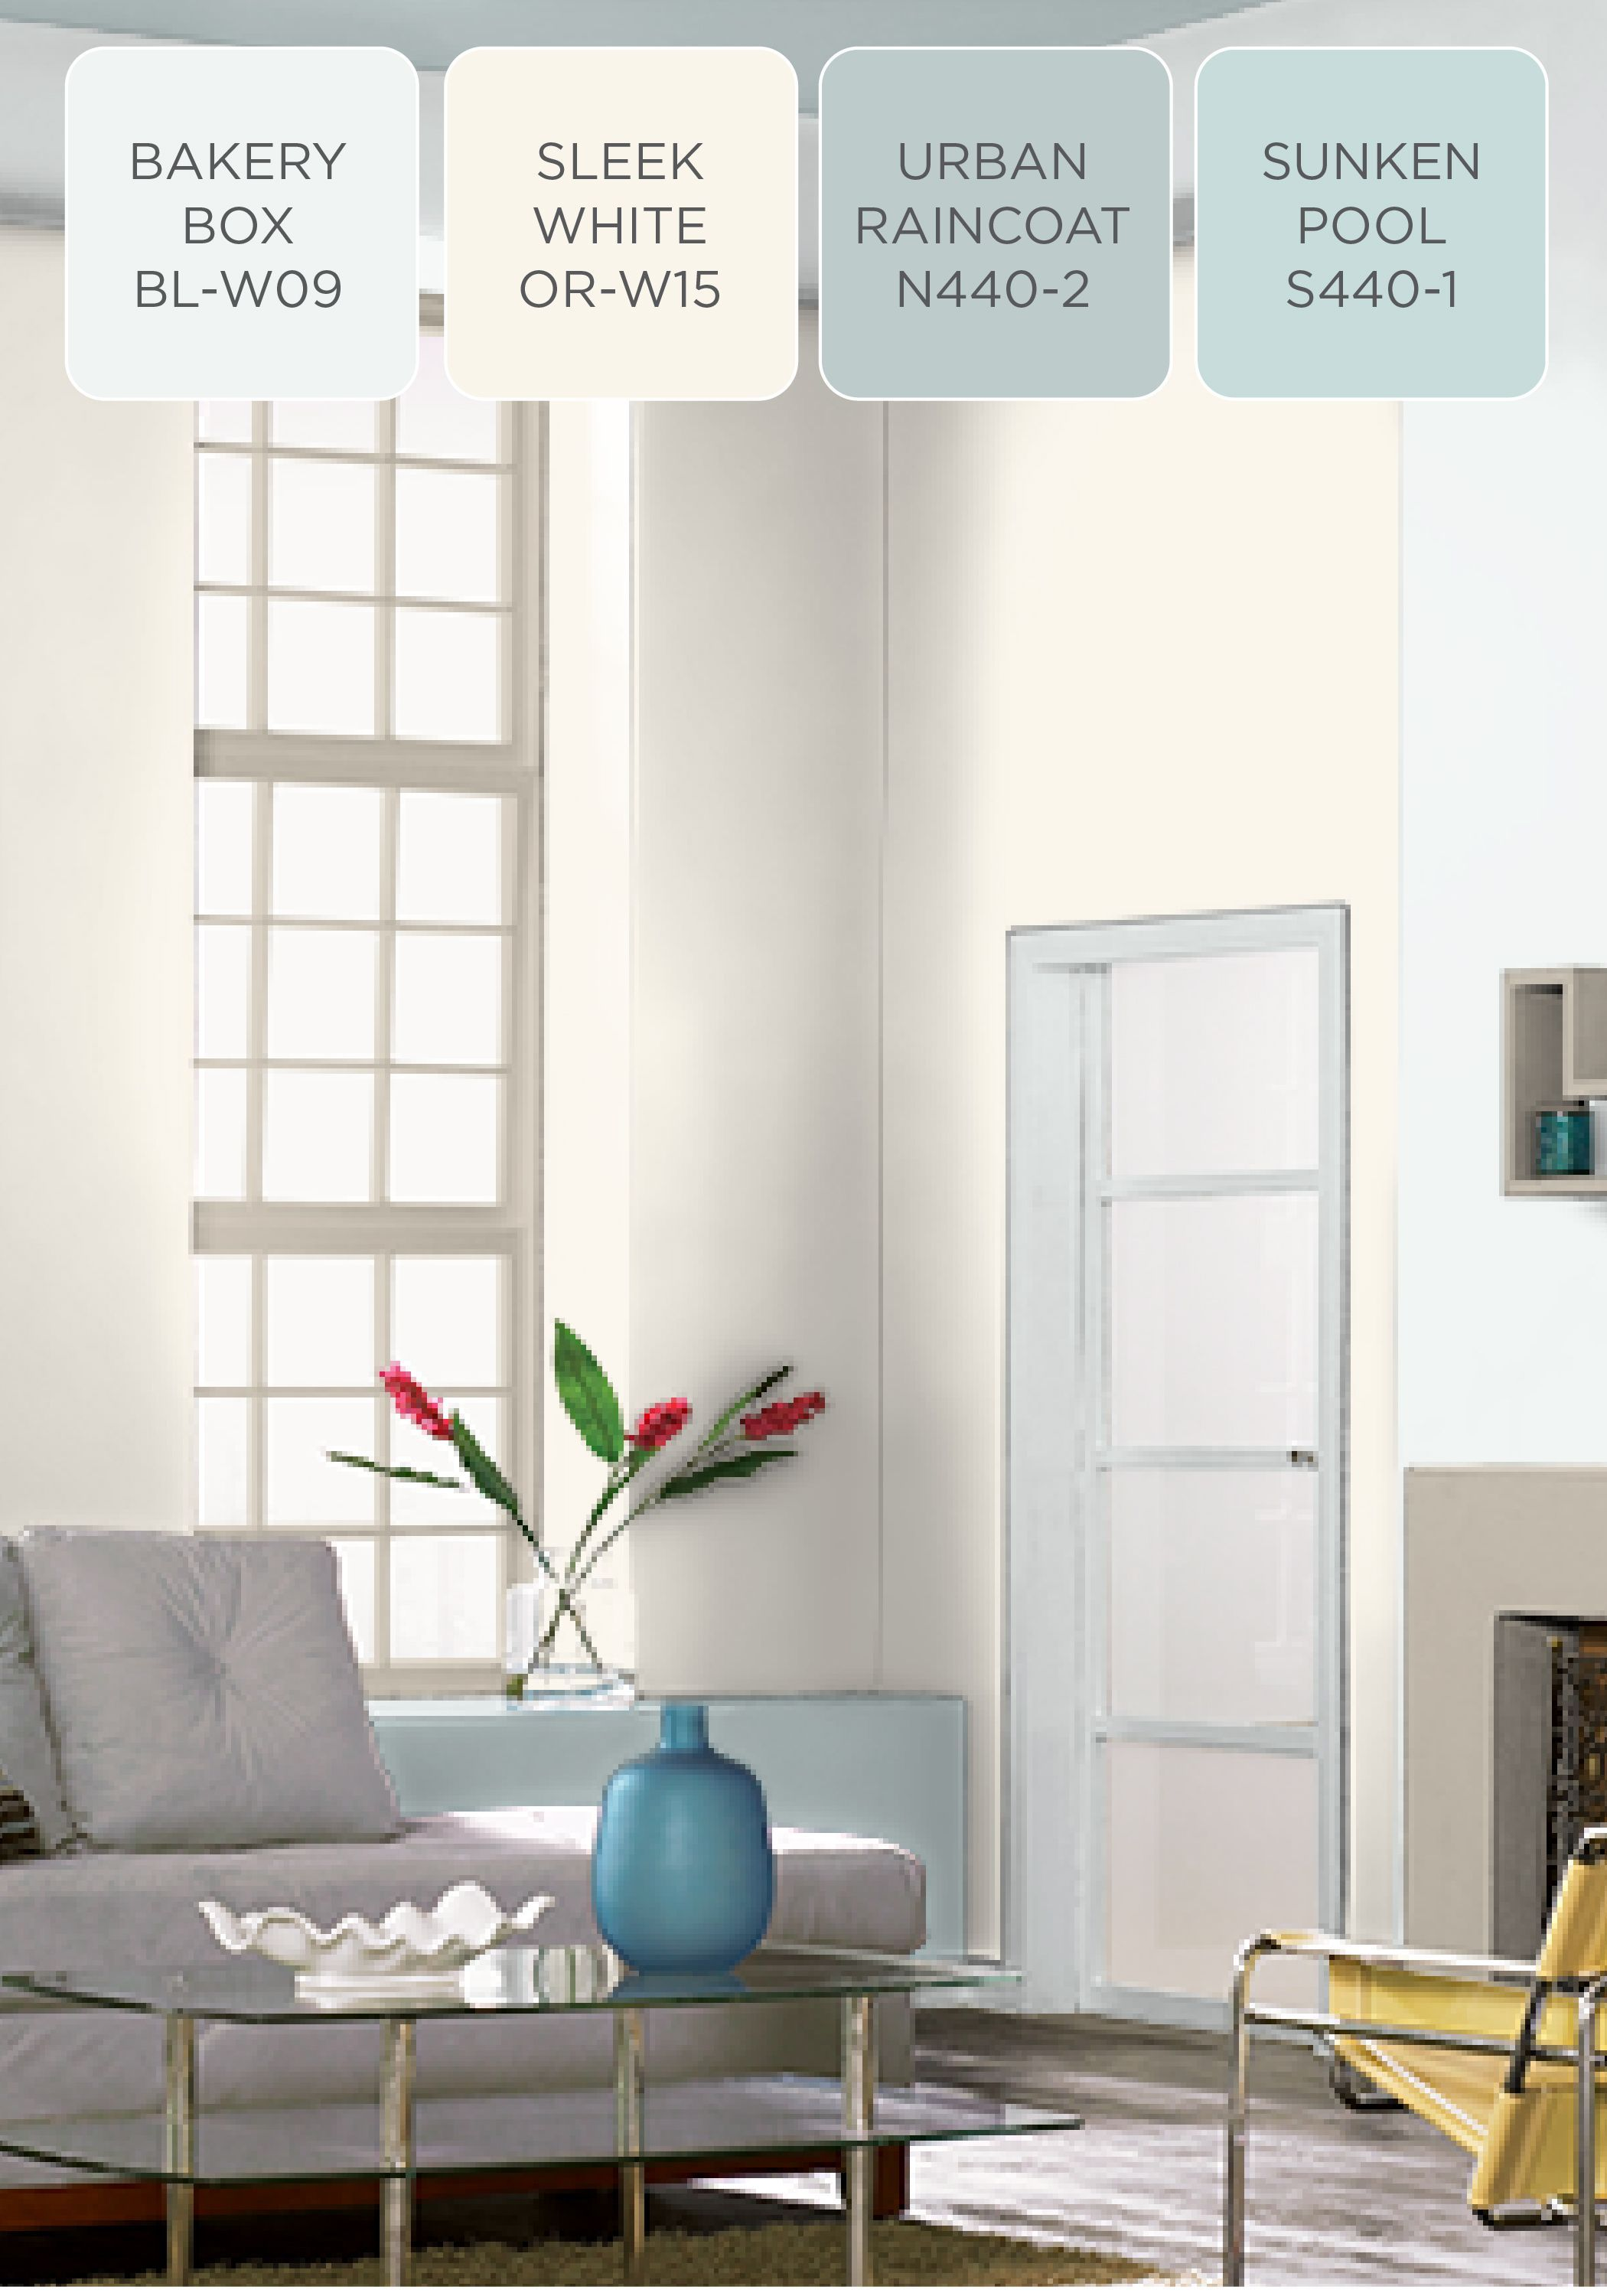 Create An Oasis In Your Home By Incorporating This Soothing Color Scheme Of Behr Paint Color Palette Living Room Behr Paint Colors Paint Colors For Living Room #soothing #living #room #colors